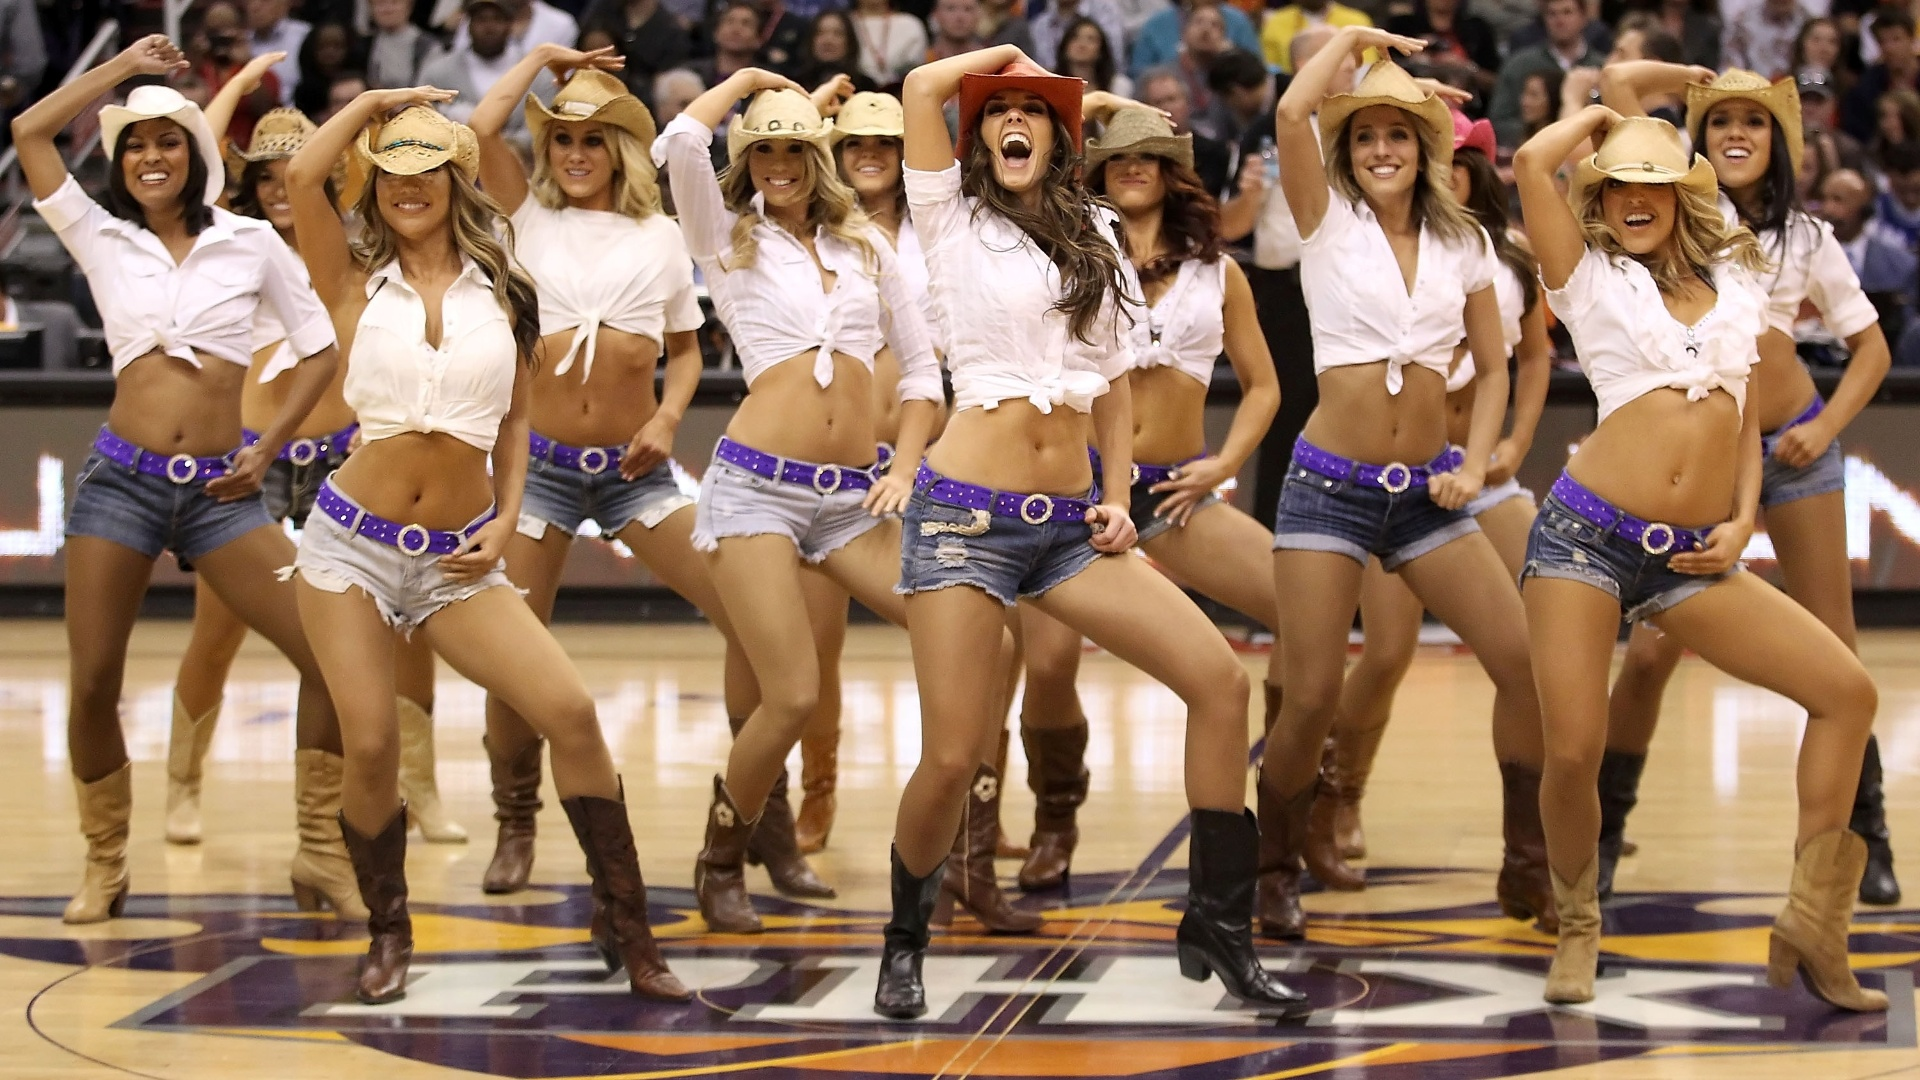 Cheerleaders do Phoenix Suns durante jogo da NBA contra o Los Angeles Lakers em Phoenix, Arizona (19/02/2012)